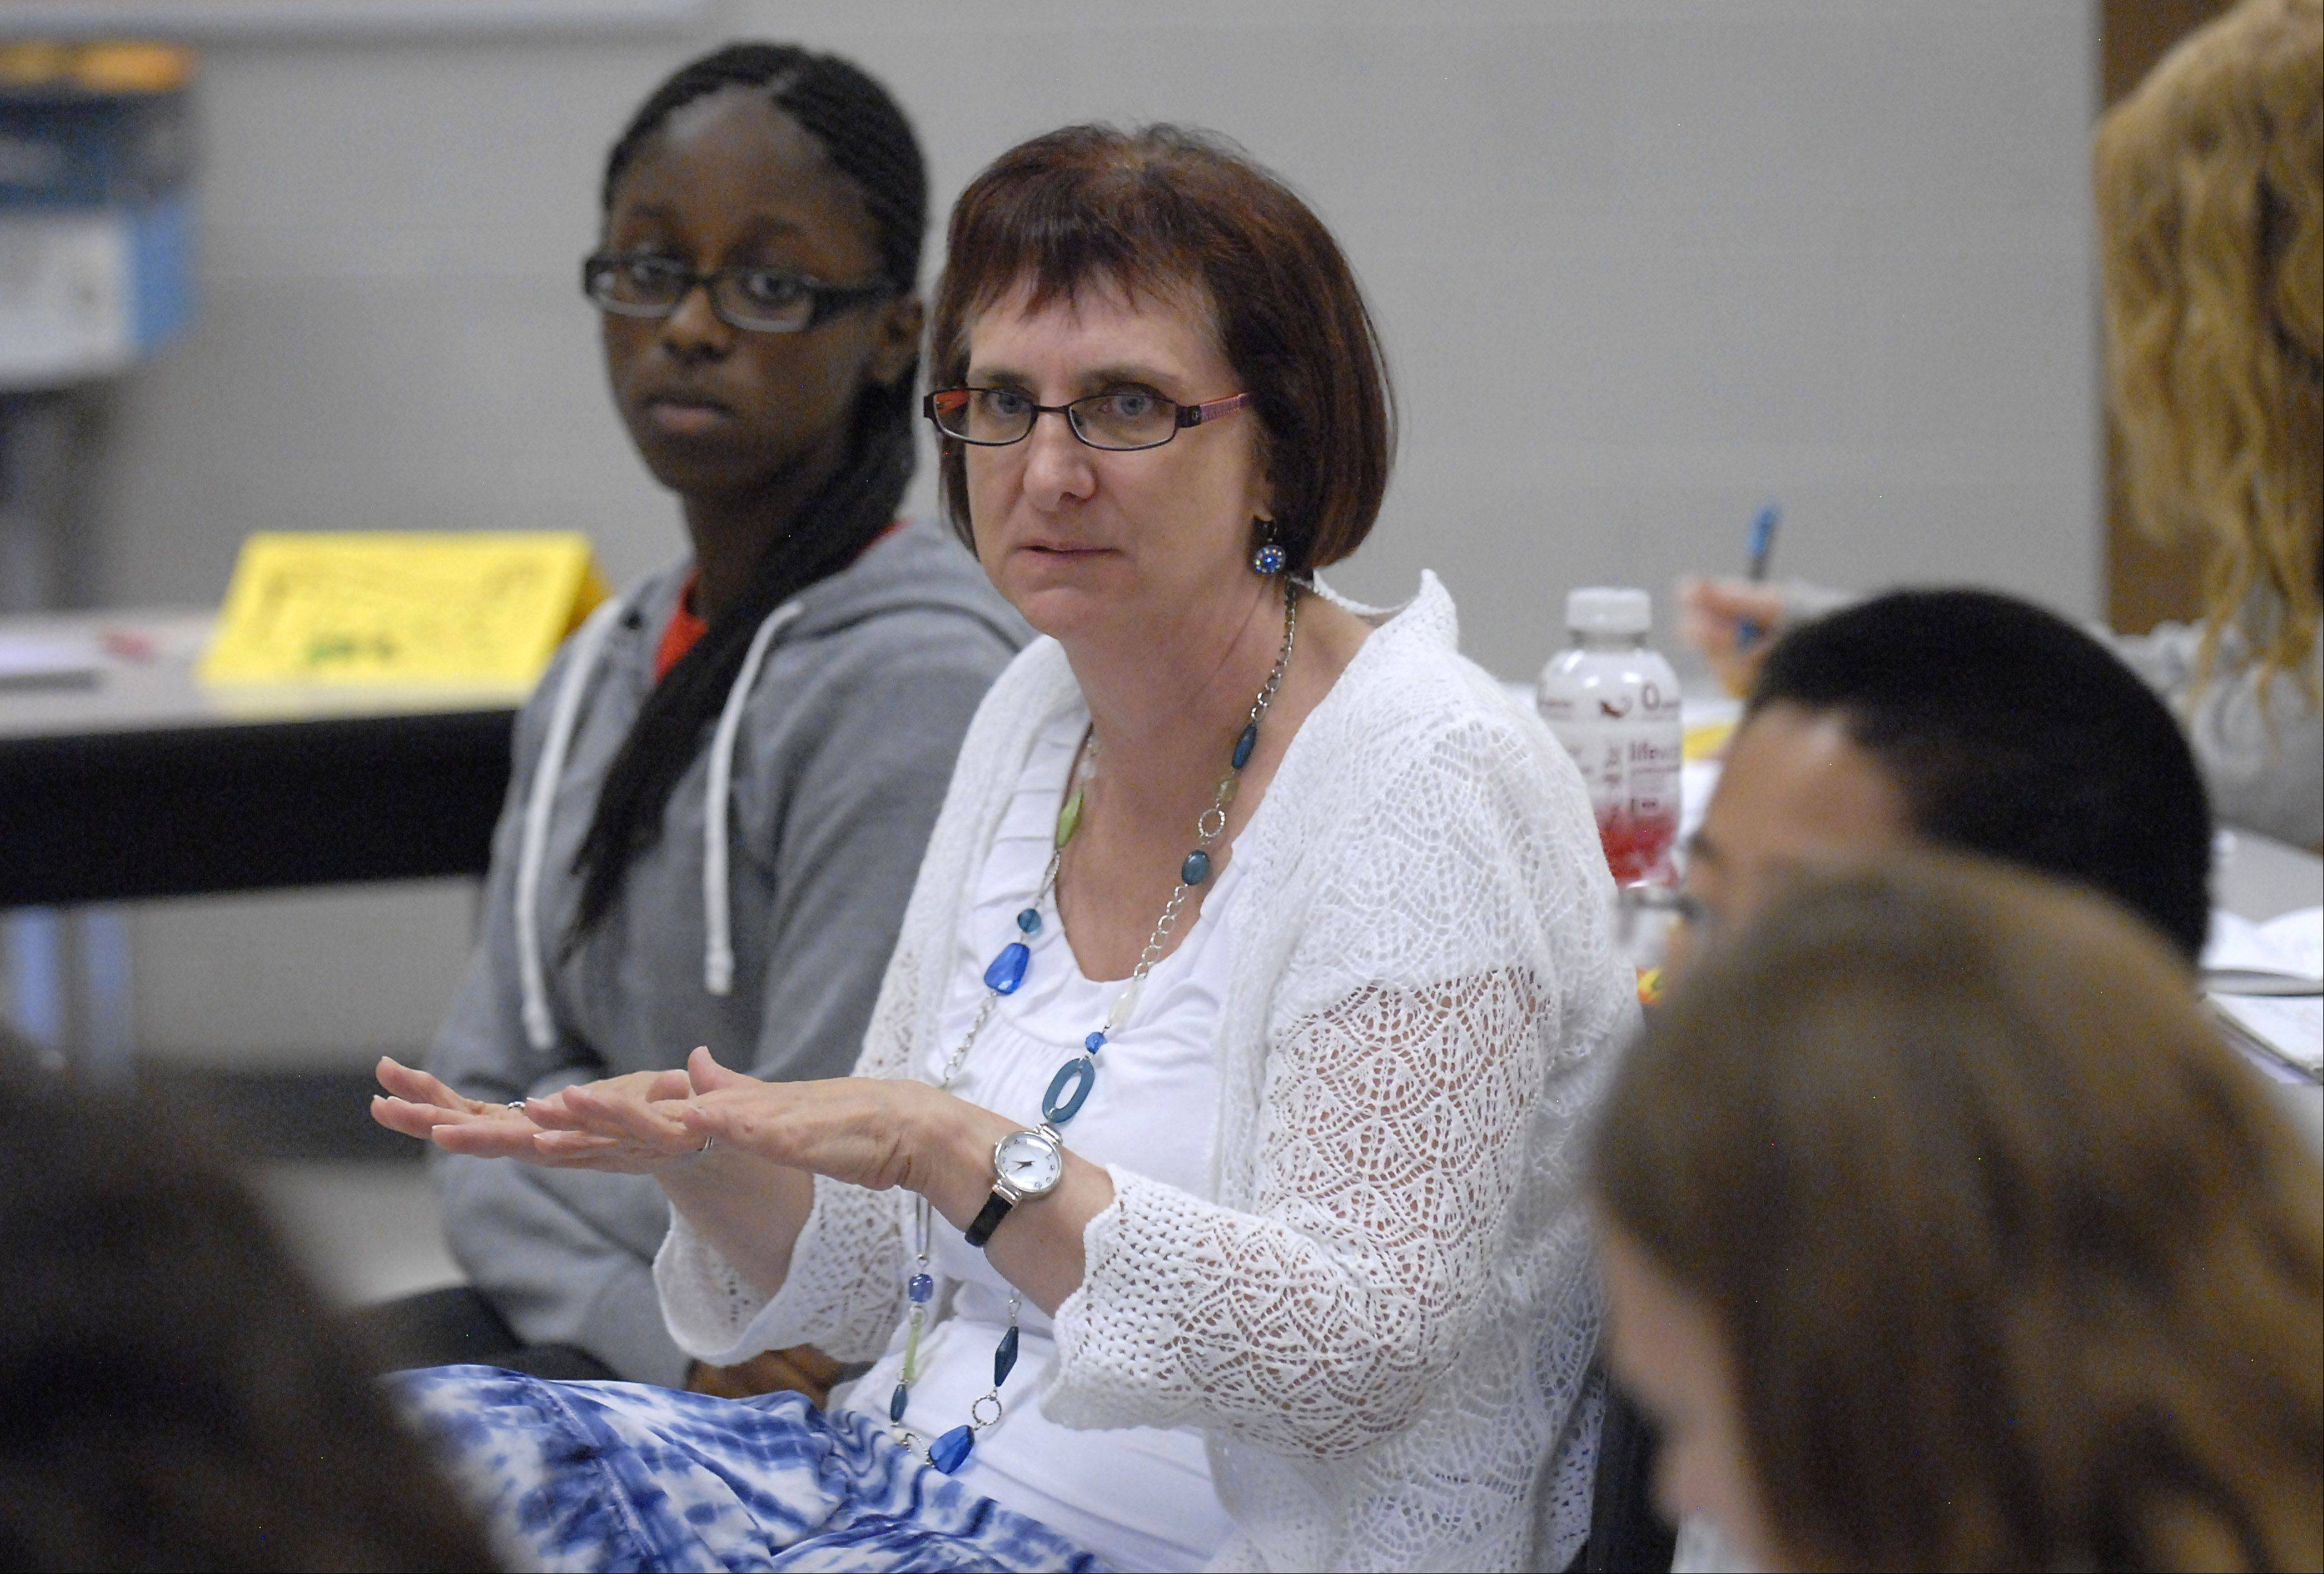 Author Kathi Baron of Oak Park works with students in the College Writing Academy during last year�s Kids College program at Elgin Community College. The class was for students 11 to 15.